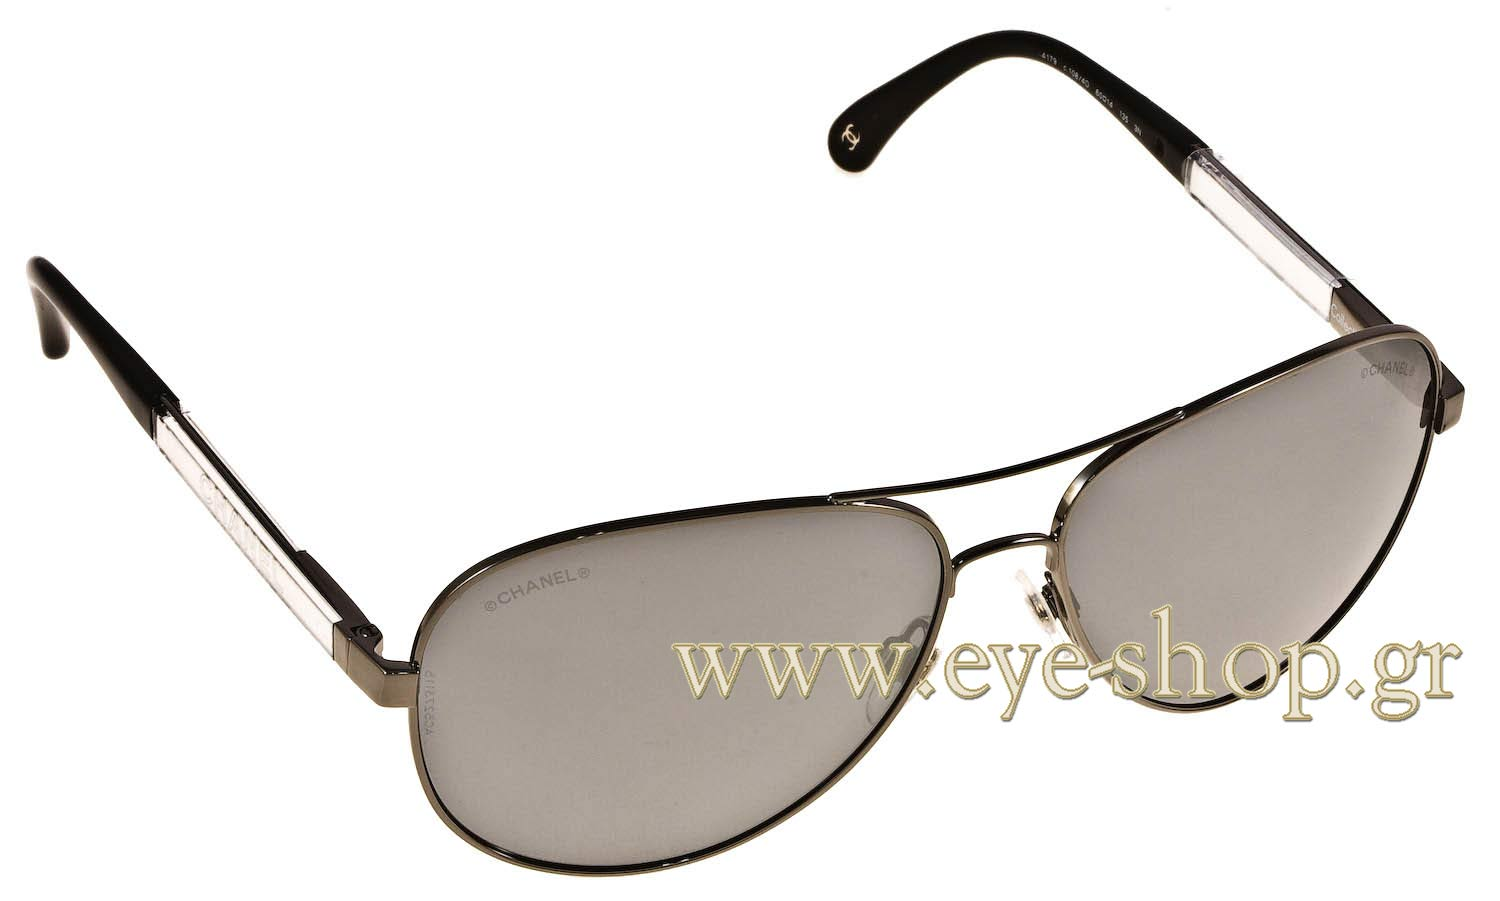 0 chanel 4179 c1084d col 60 unisex 2017 eyeshop ver1 for Chanel collection miroir 4179